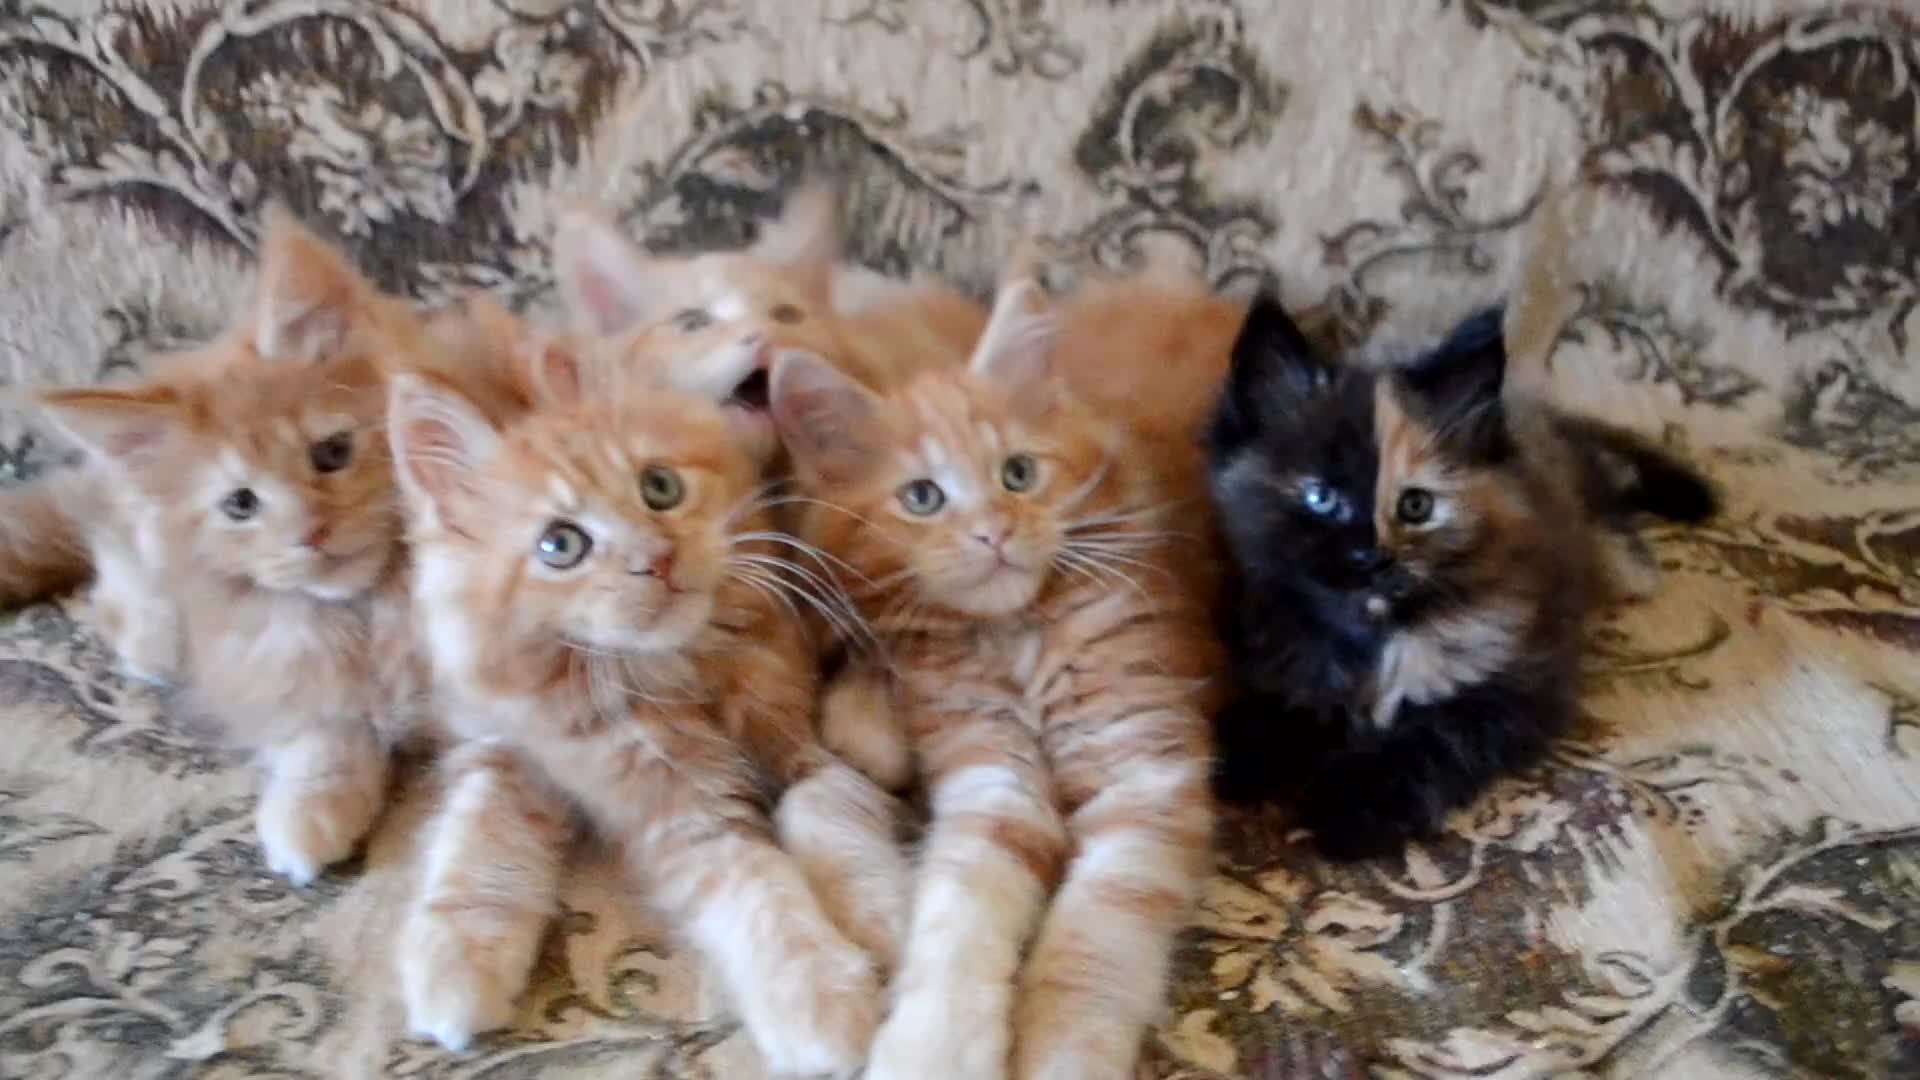 cat, cutekittens, kittens, kitty, Cute kittens GIFs